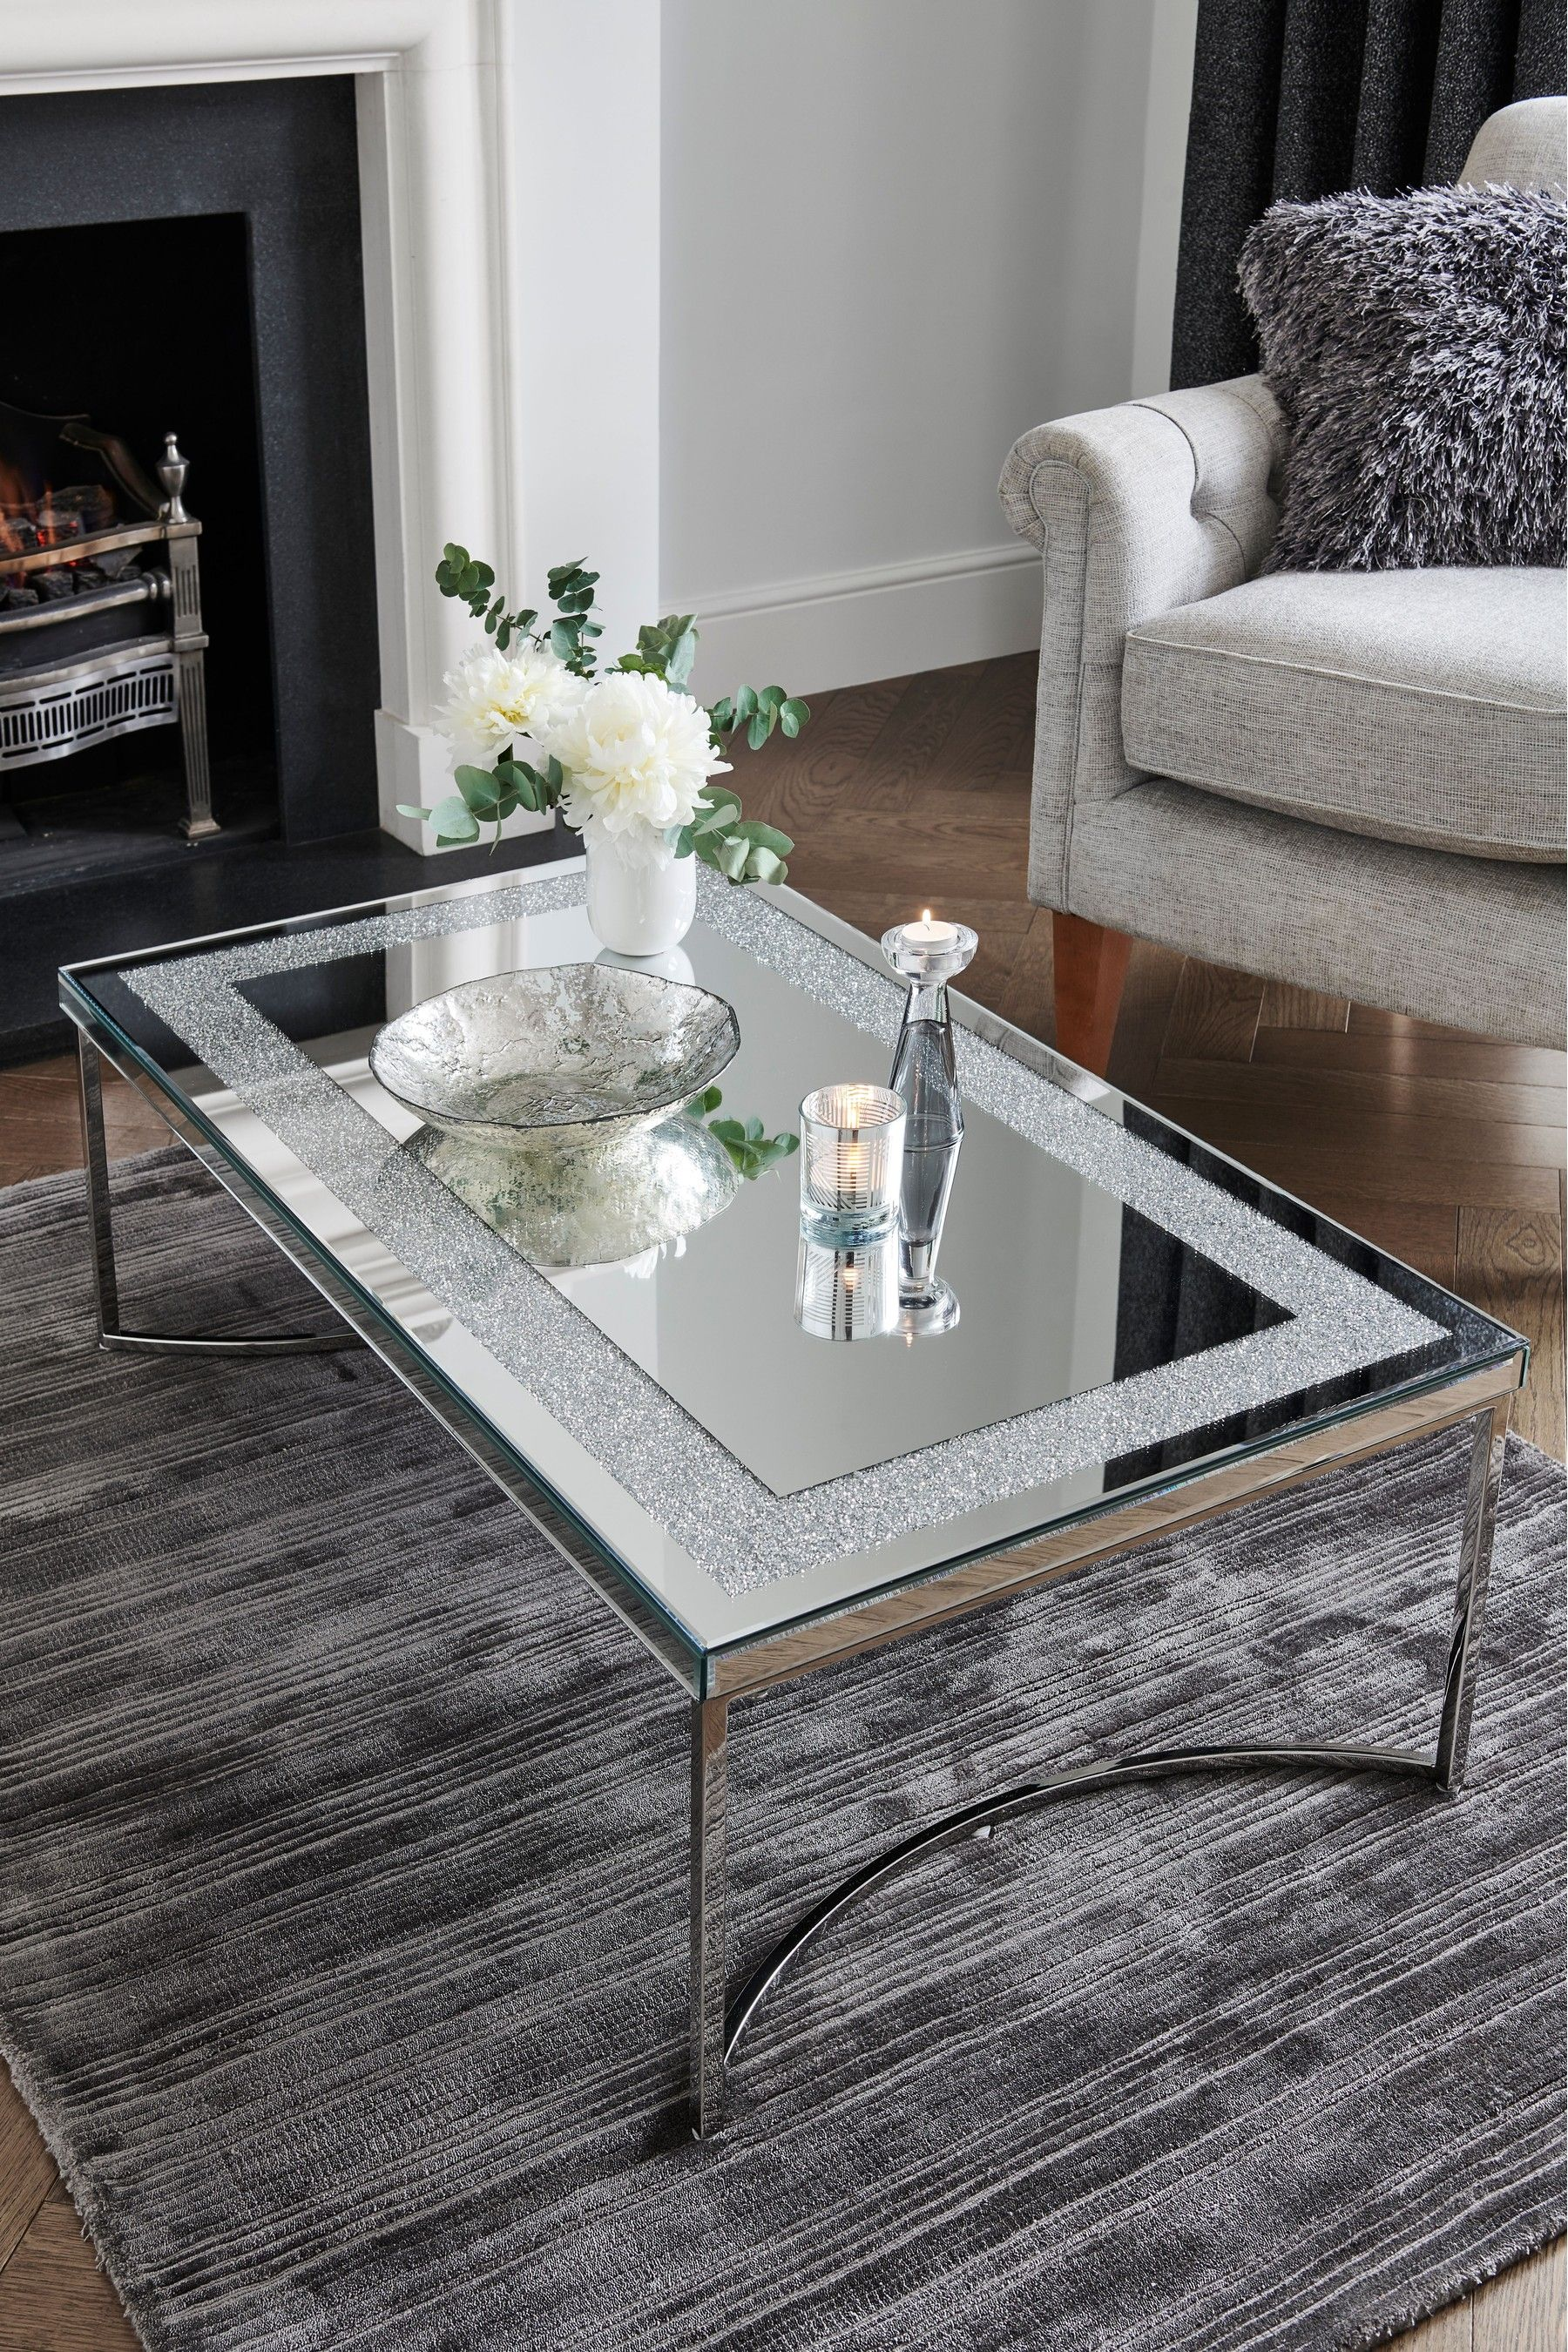 Buy Portia Coffee Table From The Next Uk Online Shop In 2020 Coffee Table Glass Coffee Table Decor Glass Table Living Room #silver #tables #for #living #room